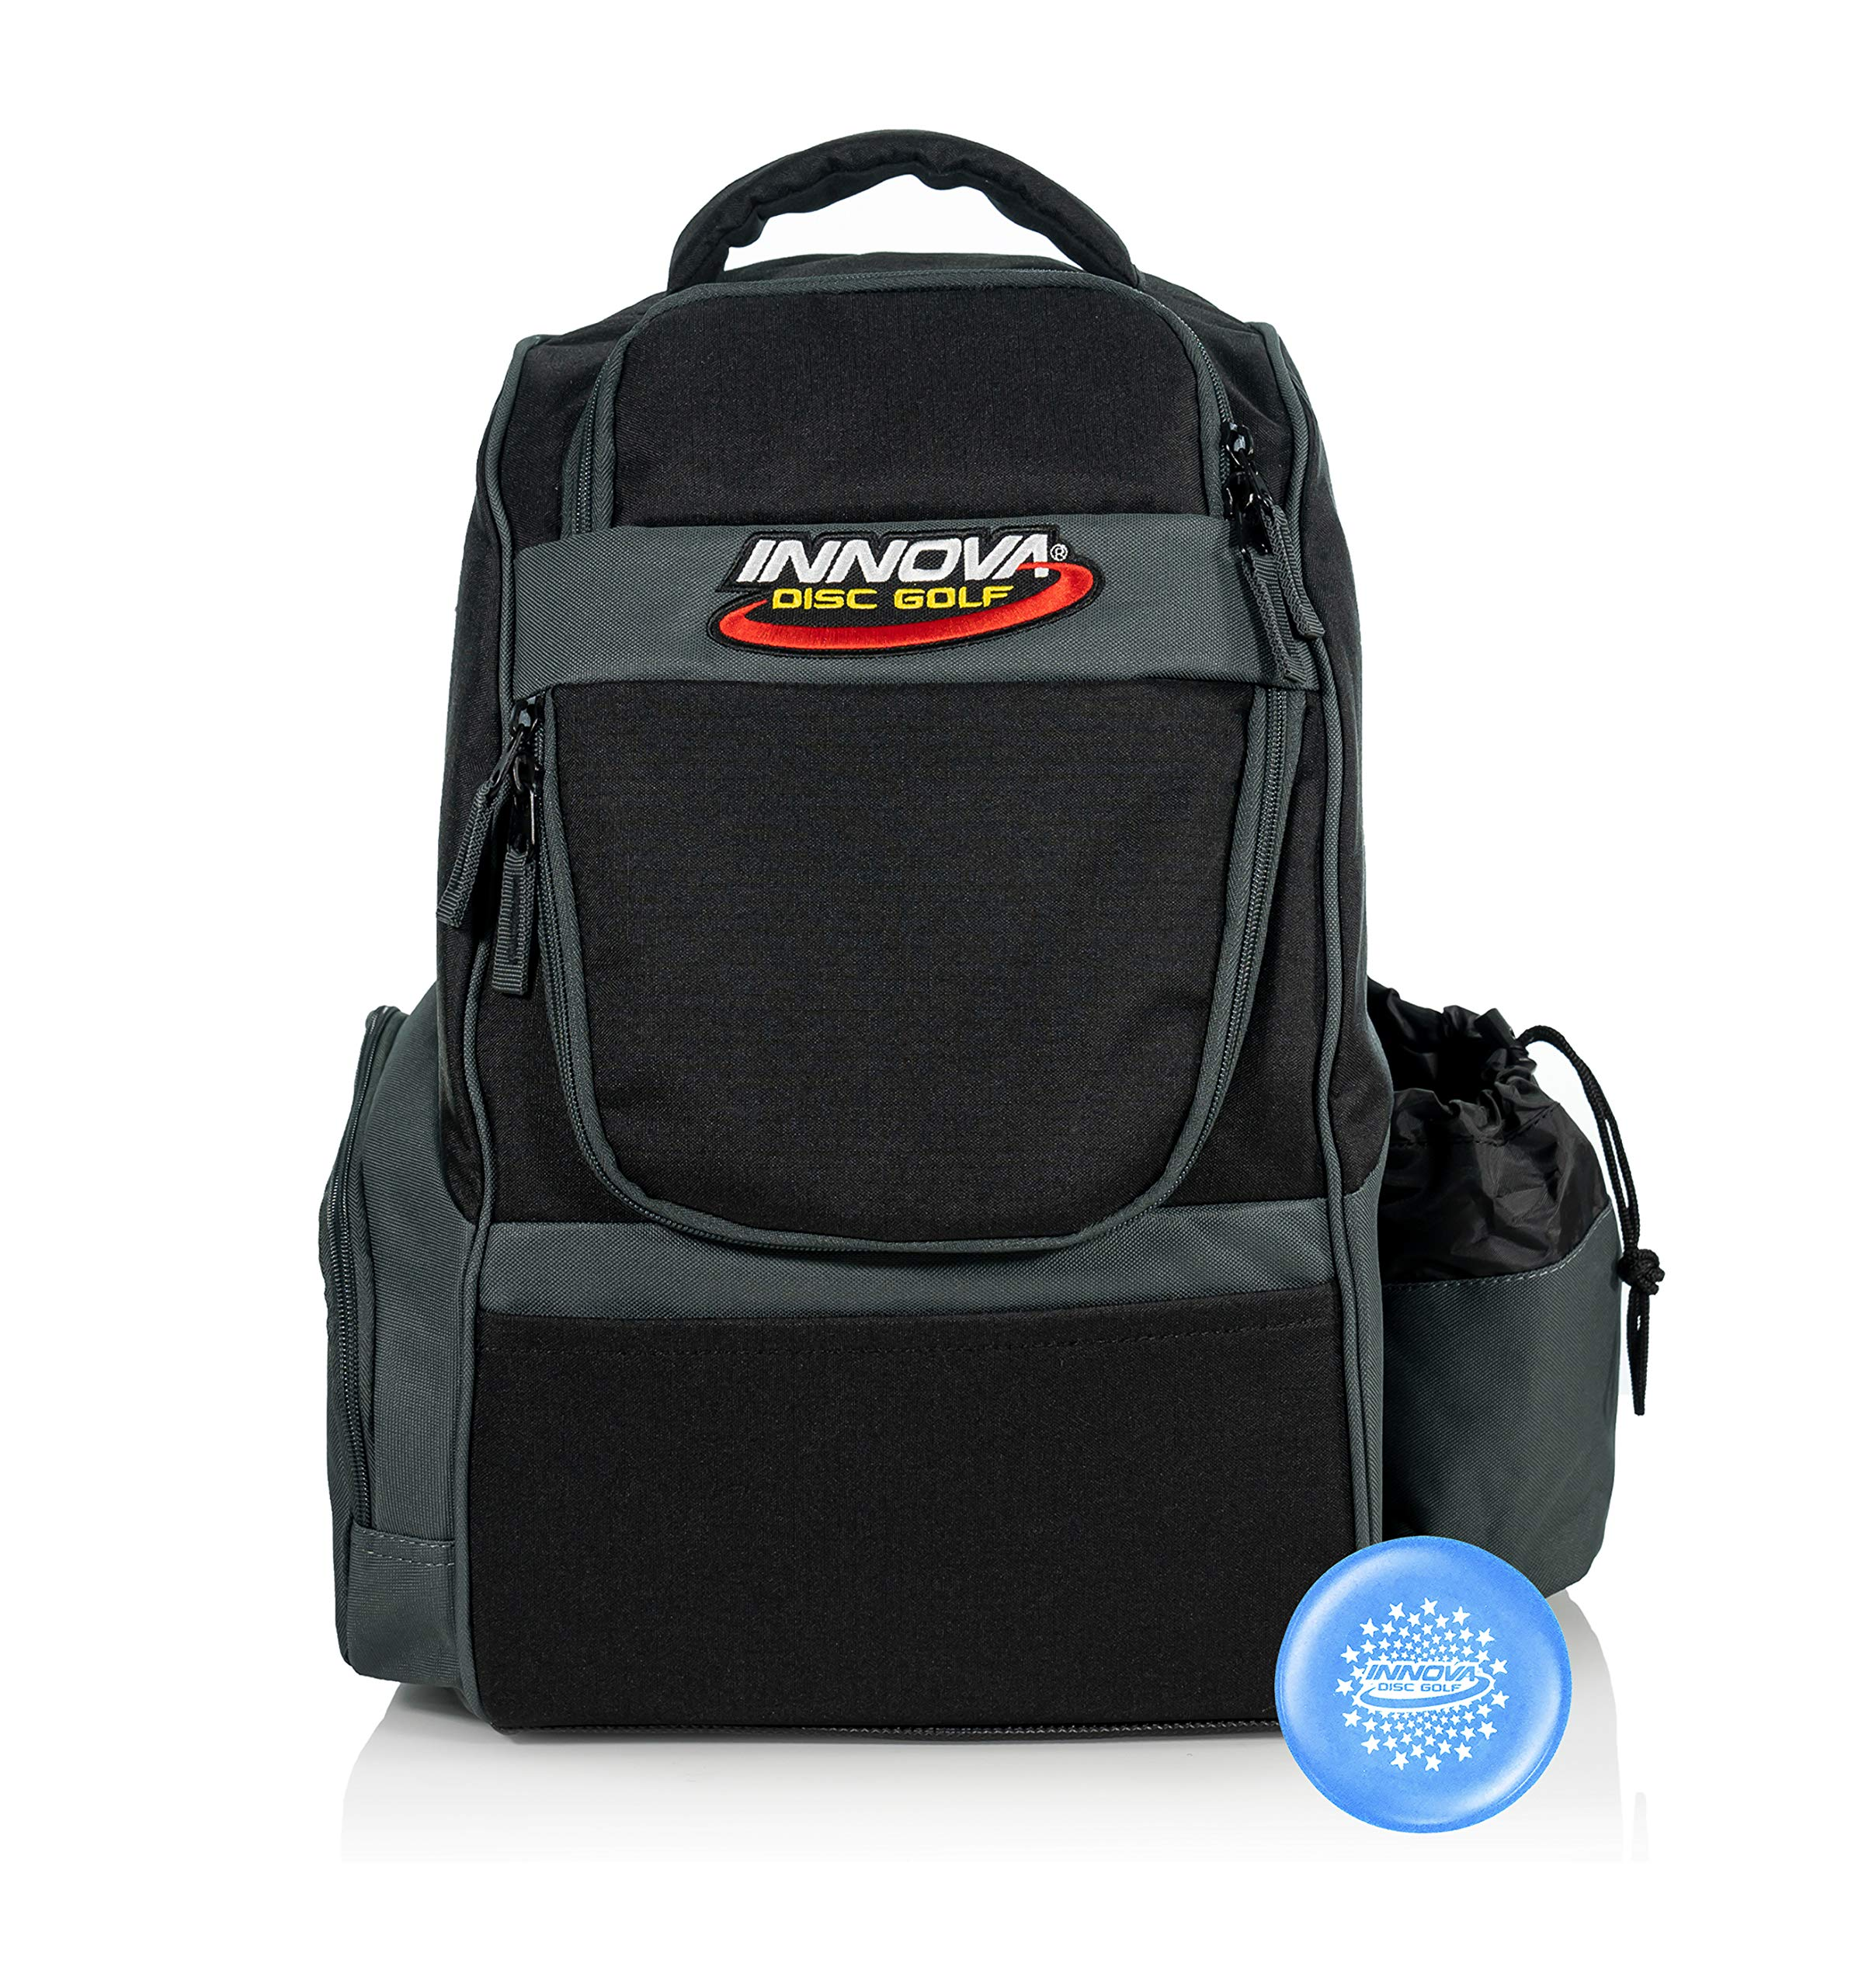 Innova Adventure Pack Backpack Disc Golf Bag - Holds 25 Discs - Lightweight - Includes Innova Limited Edition Stars Mini Marker (Black/Grey) by Innova Disc